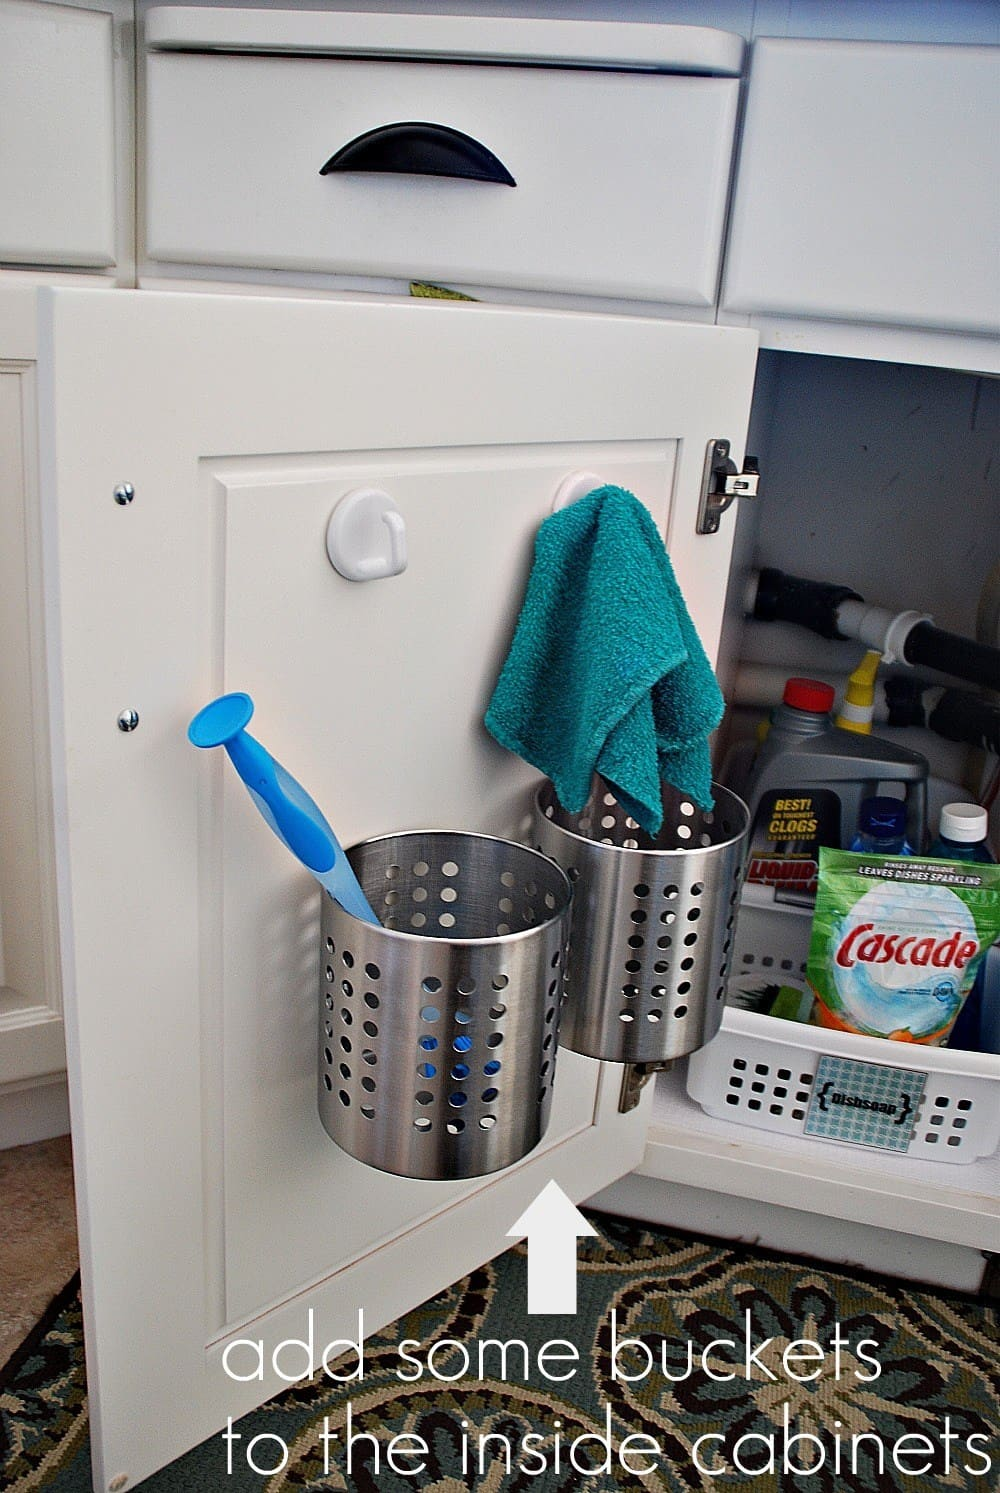 Metal buckets to organizer